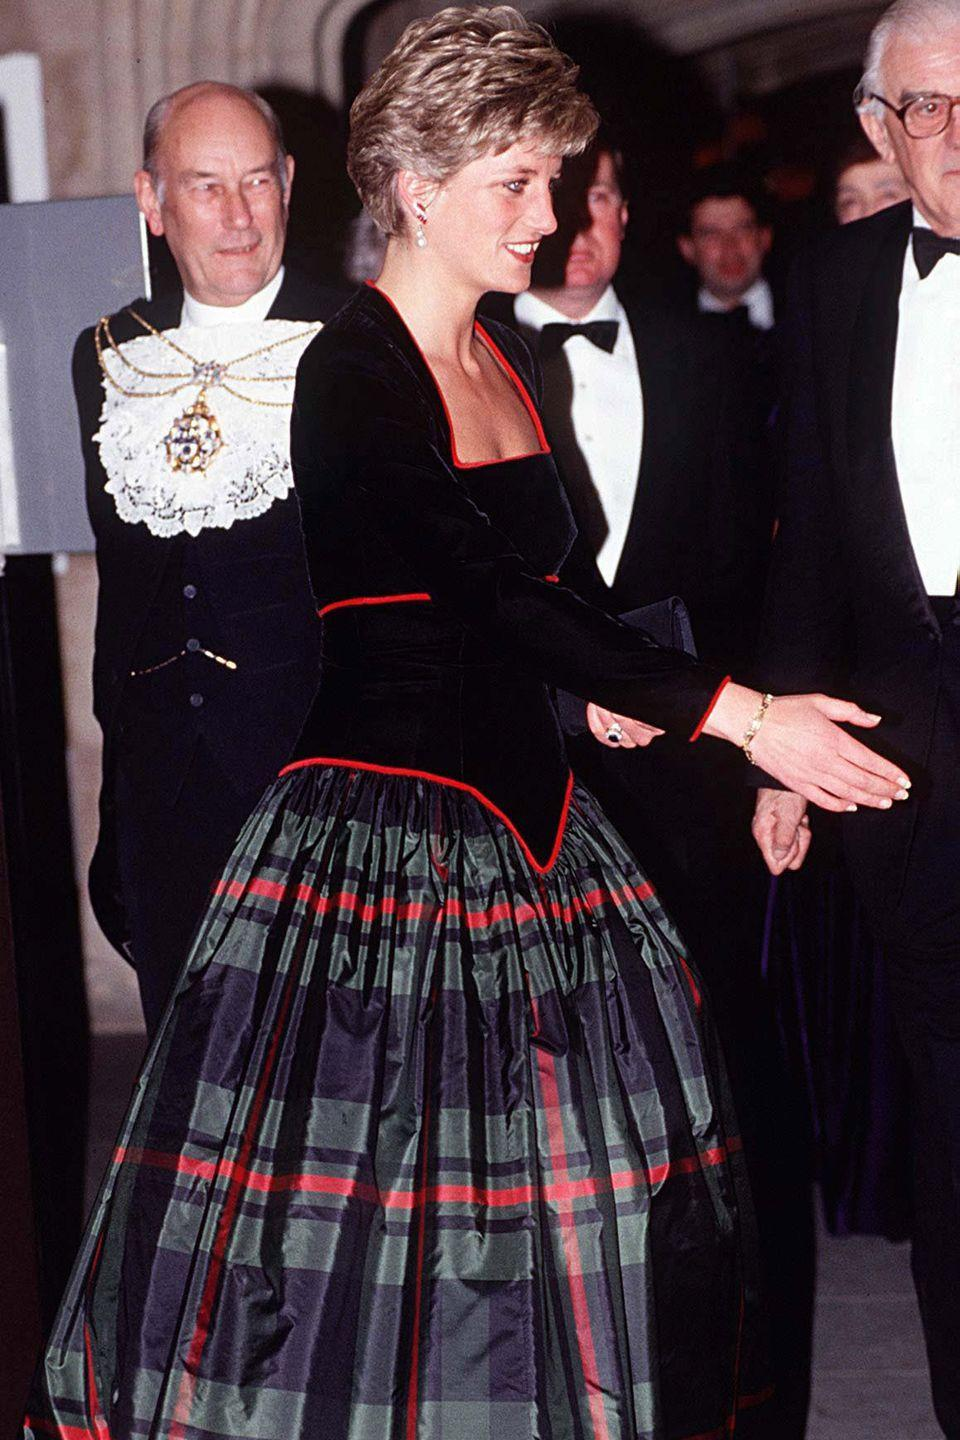 <p>Di could even pull off plaid as formal wear.</p>